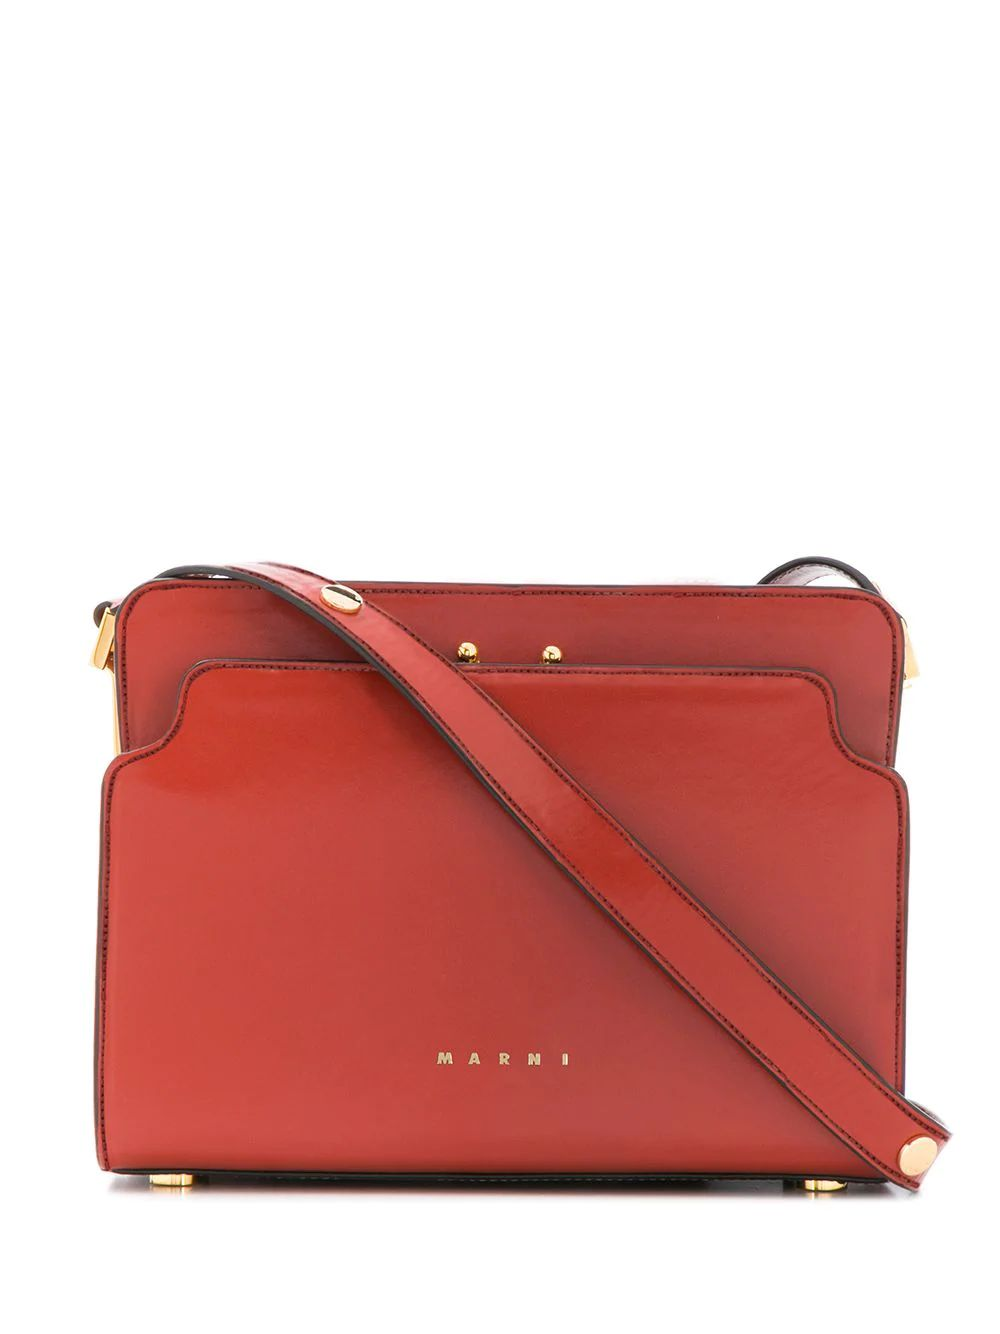 MARNI Trunk Reverse shoulder bag